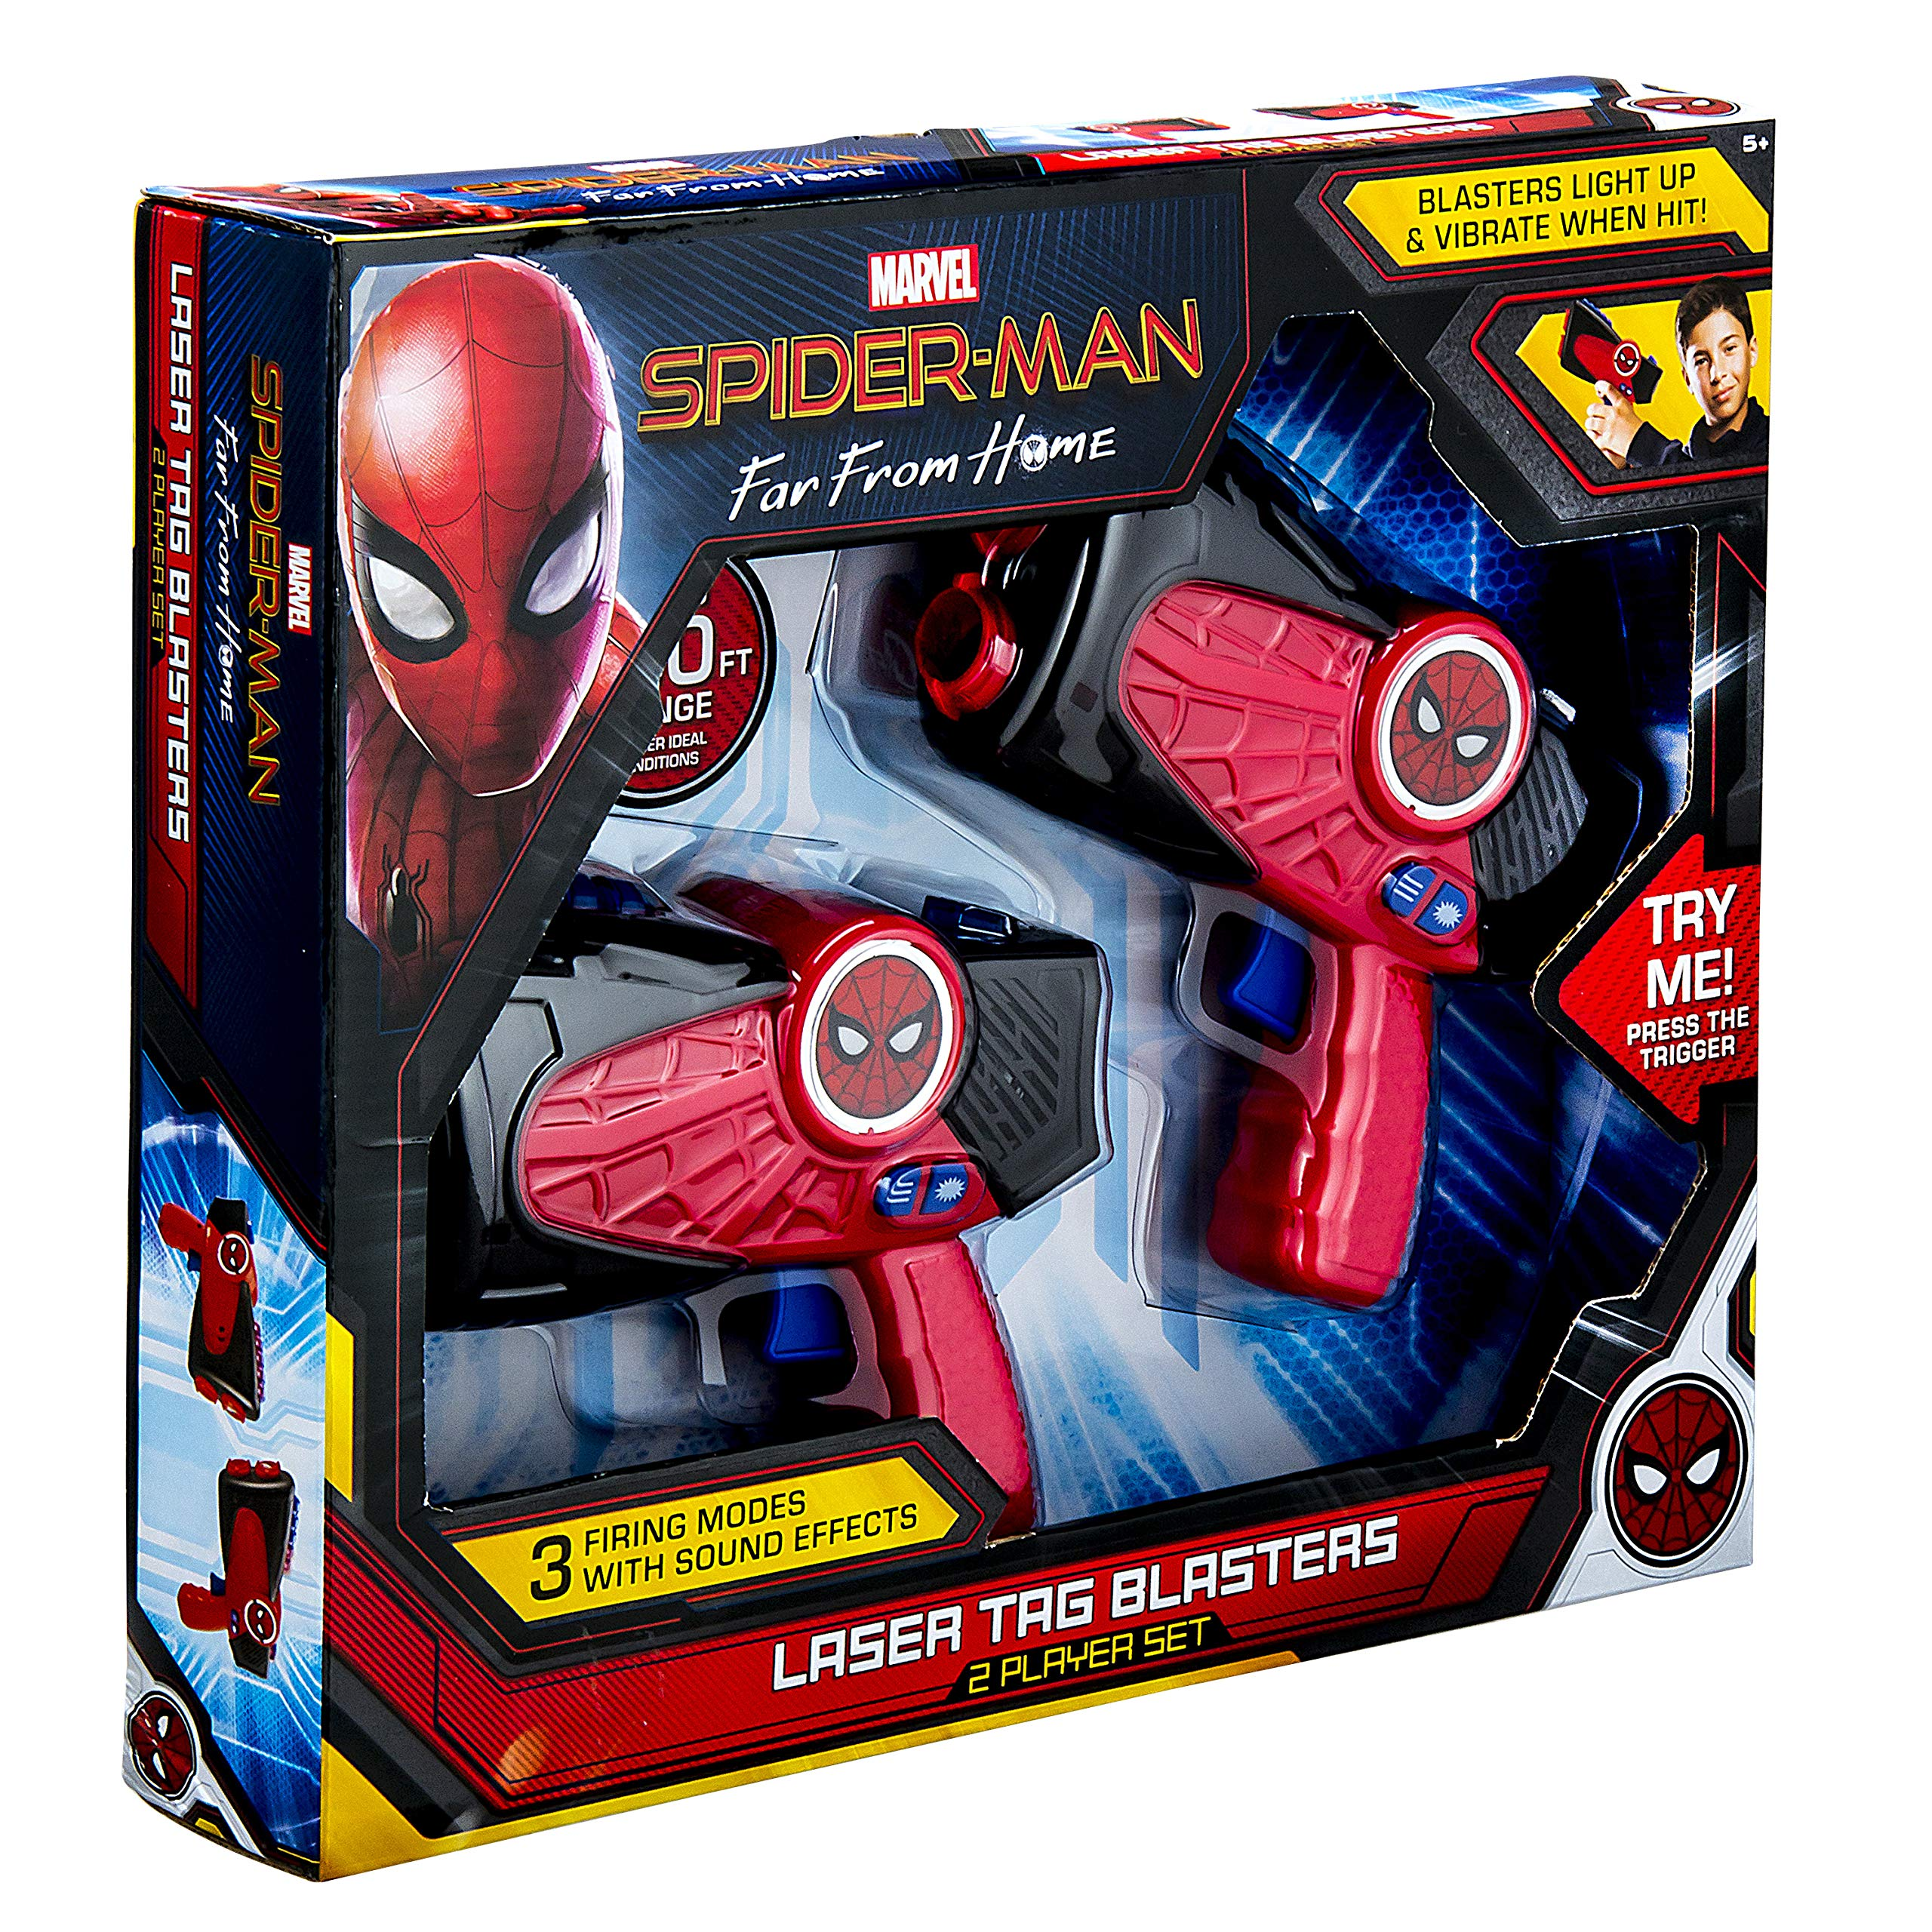 Spiderman Far from Home Laser-Tag for Kids Infared Lazer-Tag Blasters Lights Up & Vibrates When Hit by eKids (Image #7)